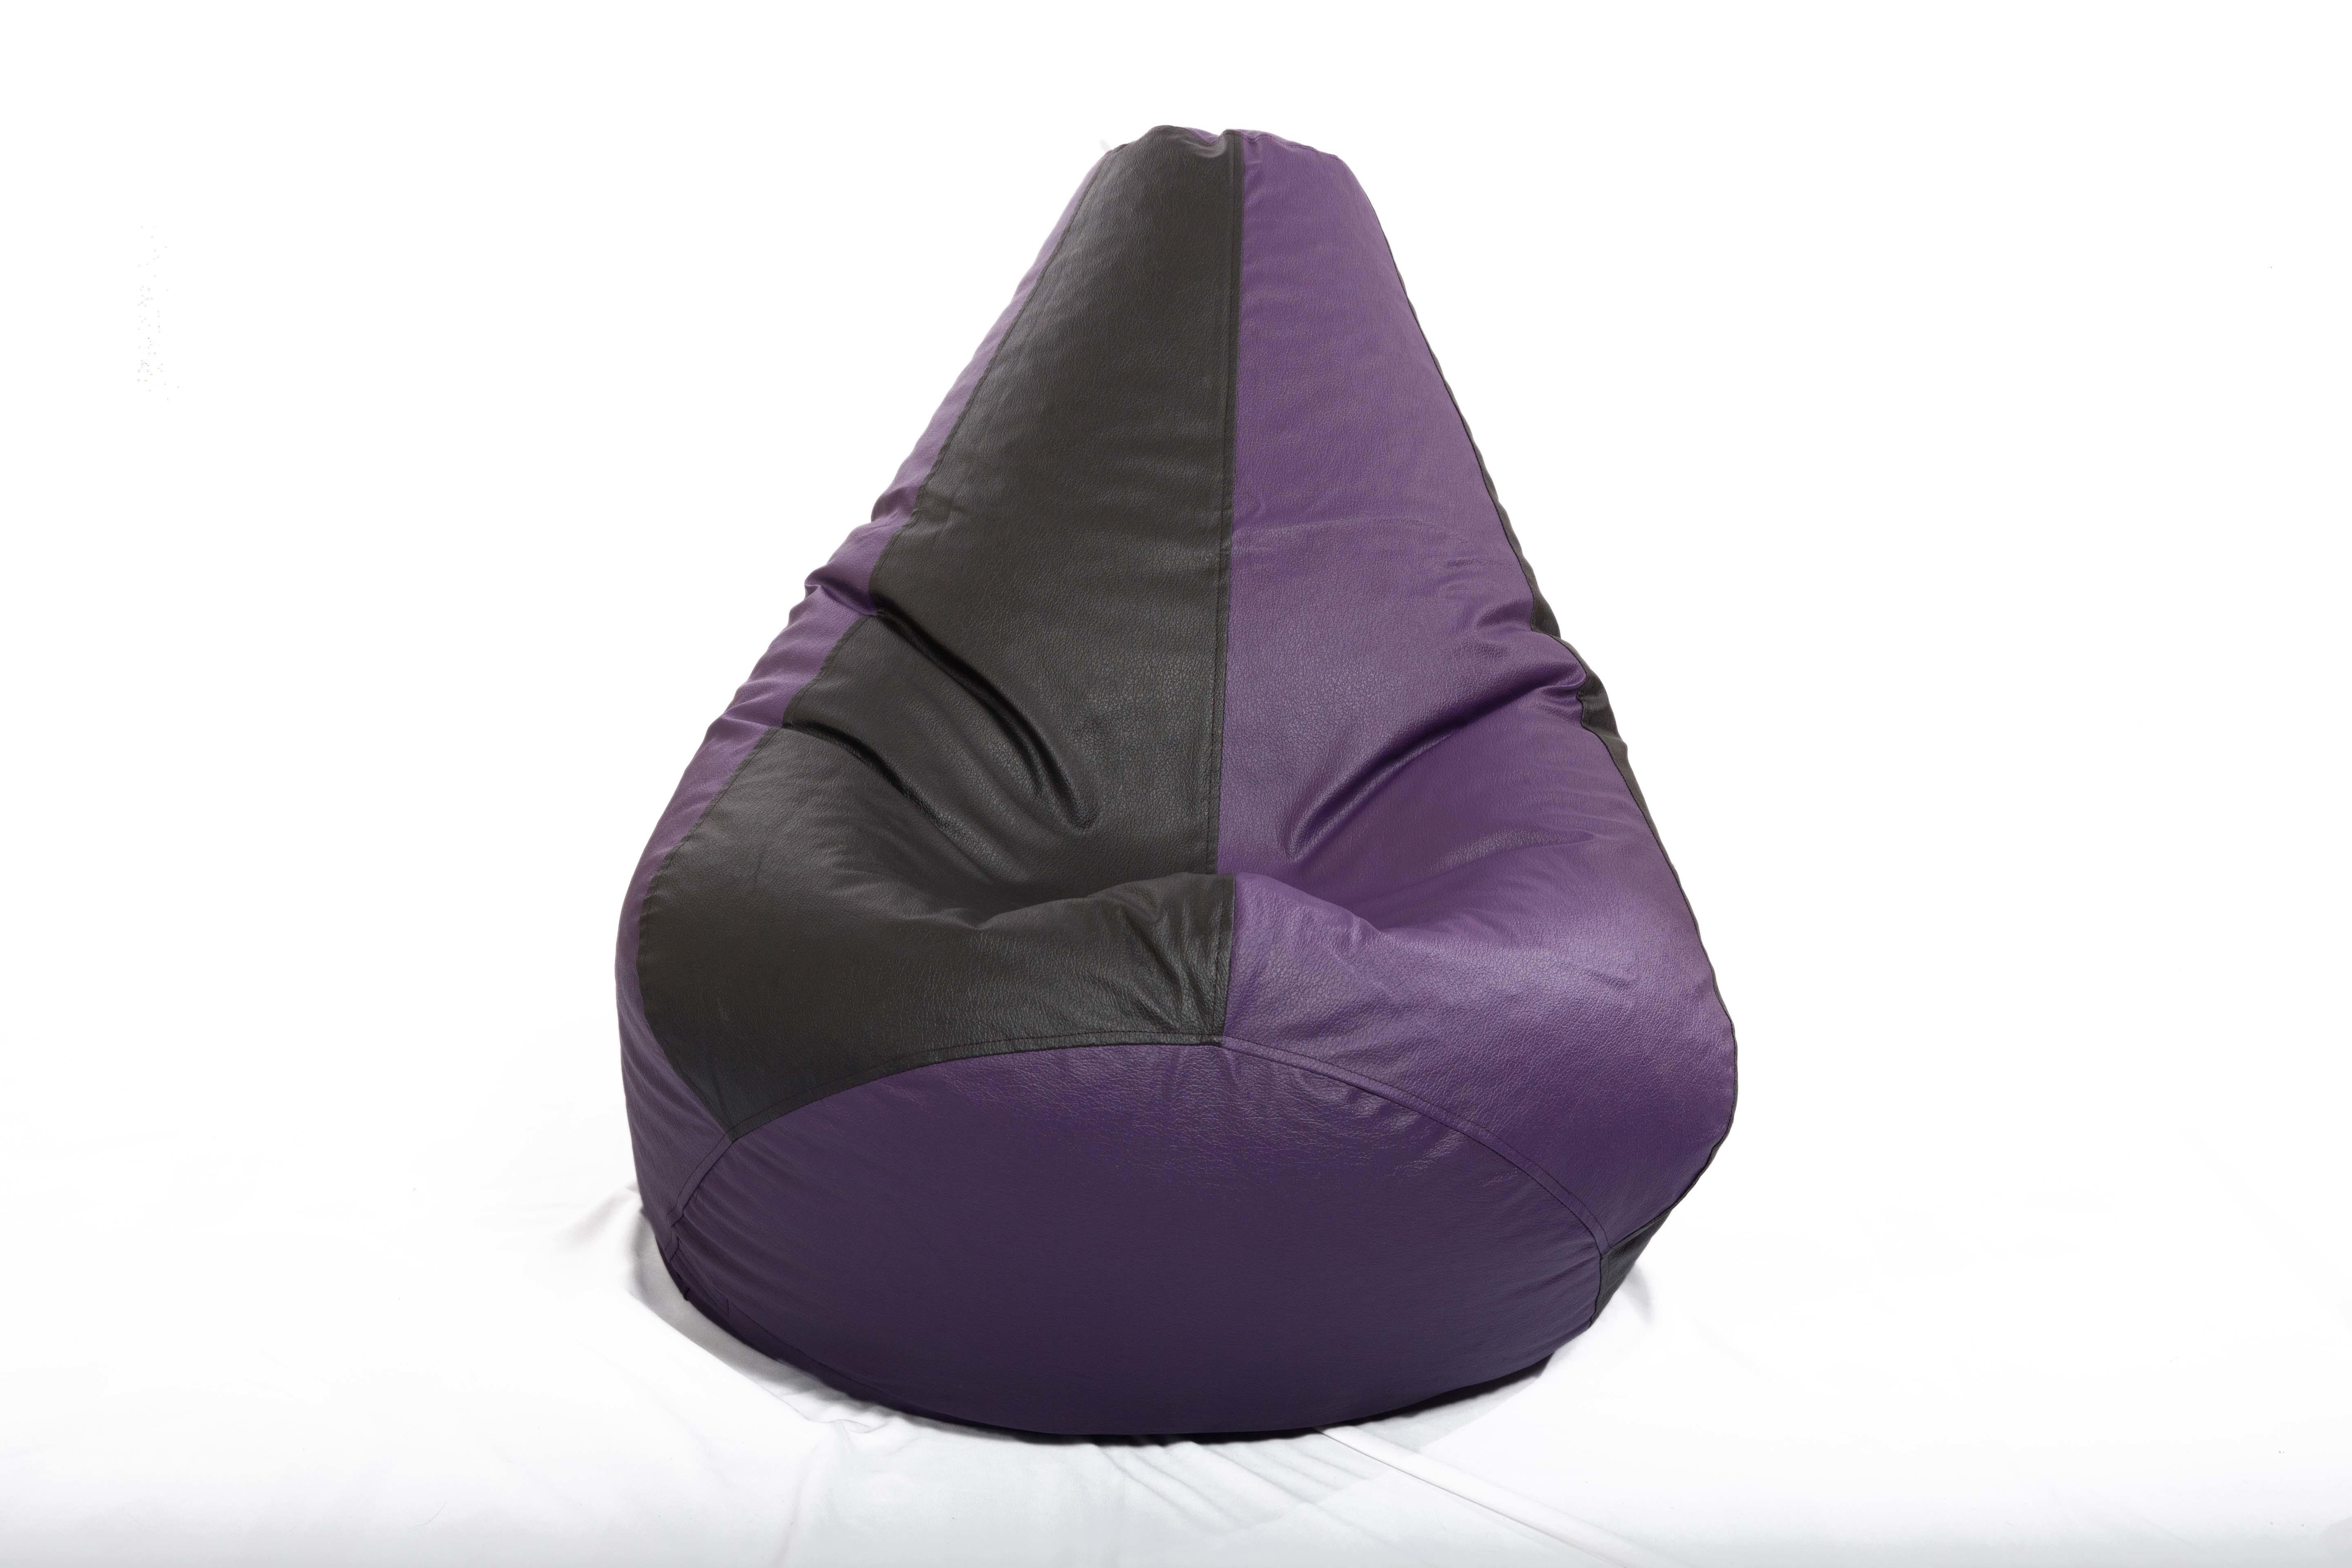 Styleco Modern Classic Bean Bag Cover Without Beans